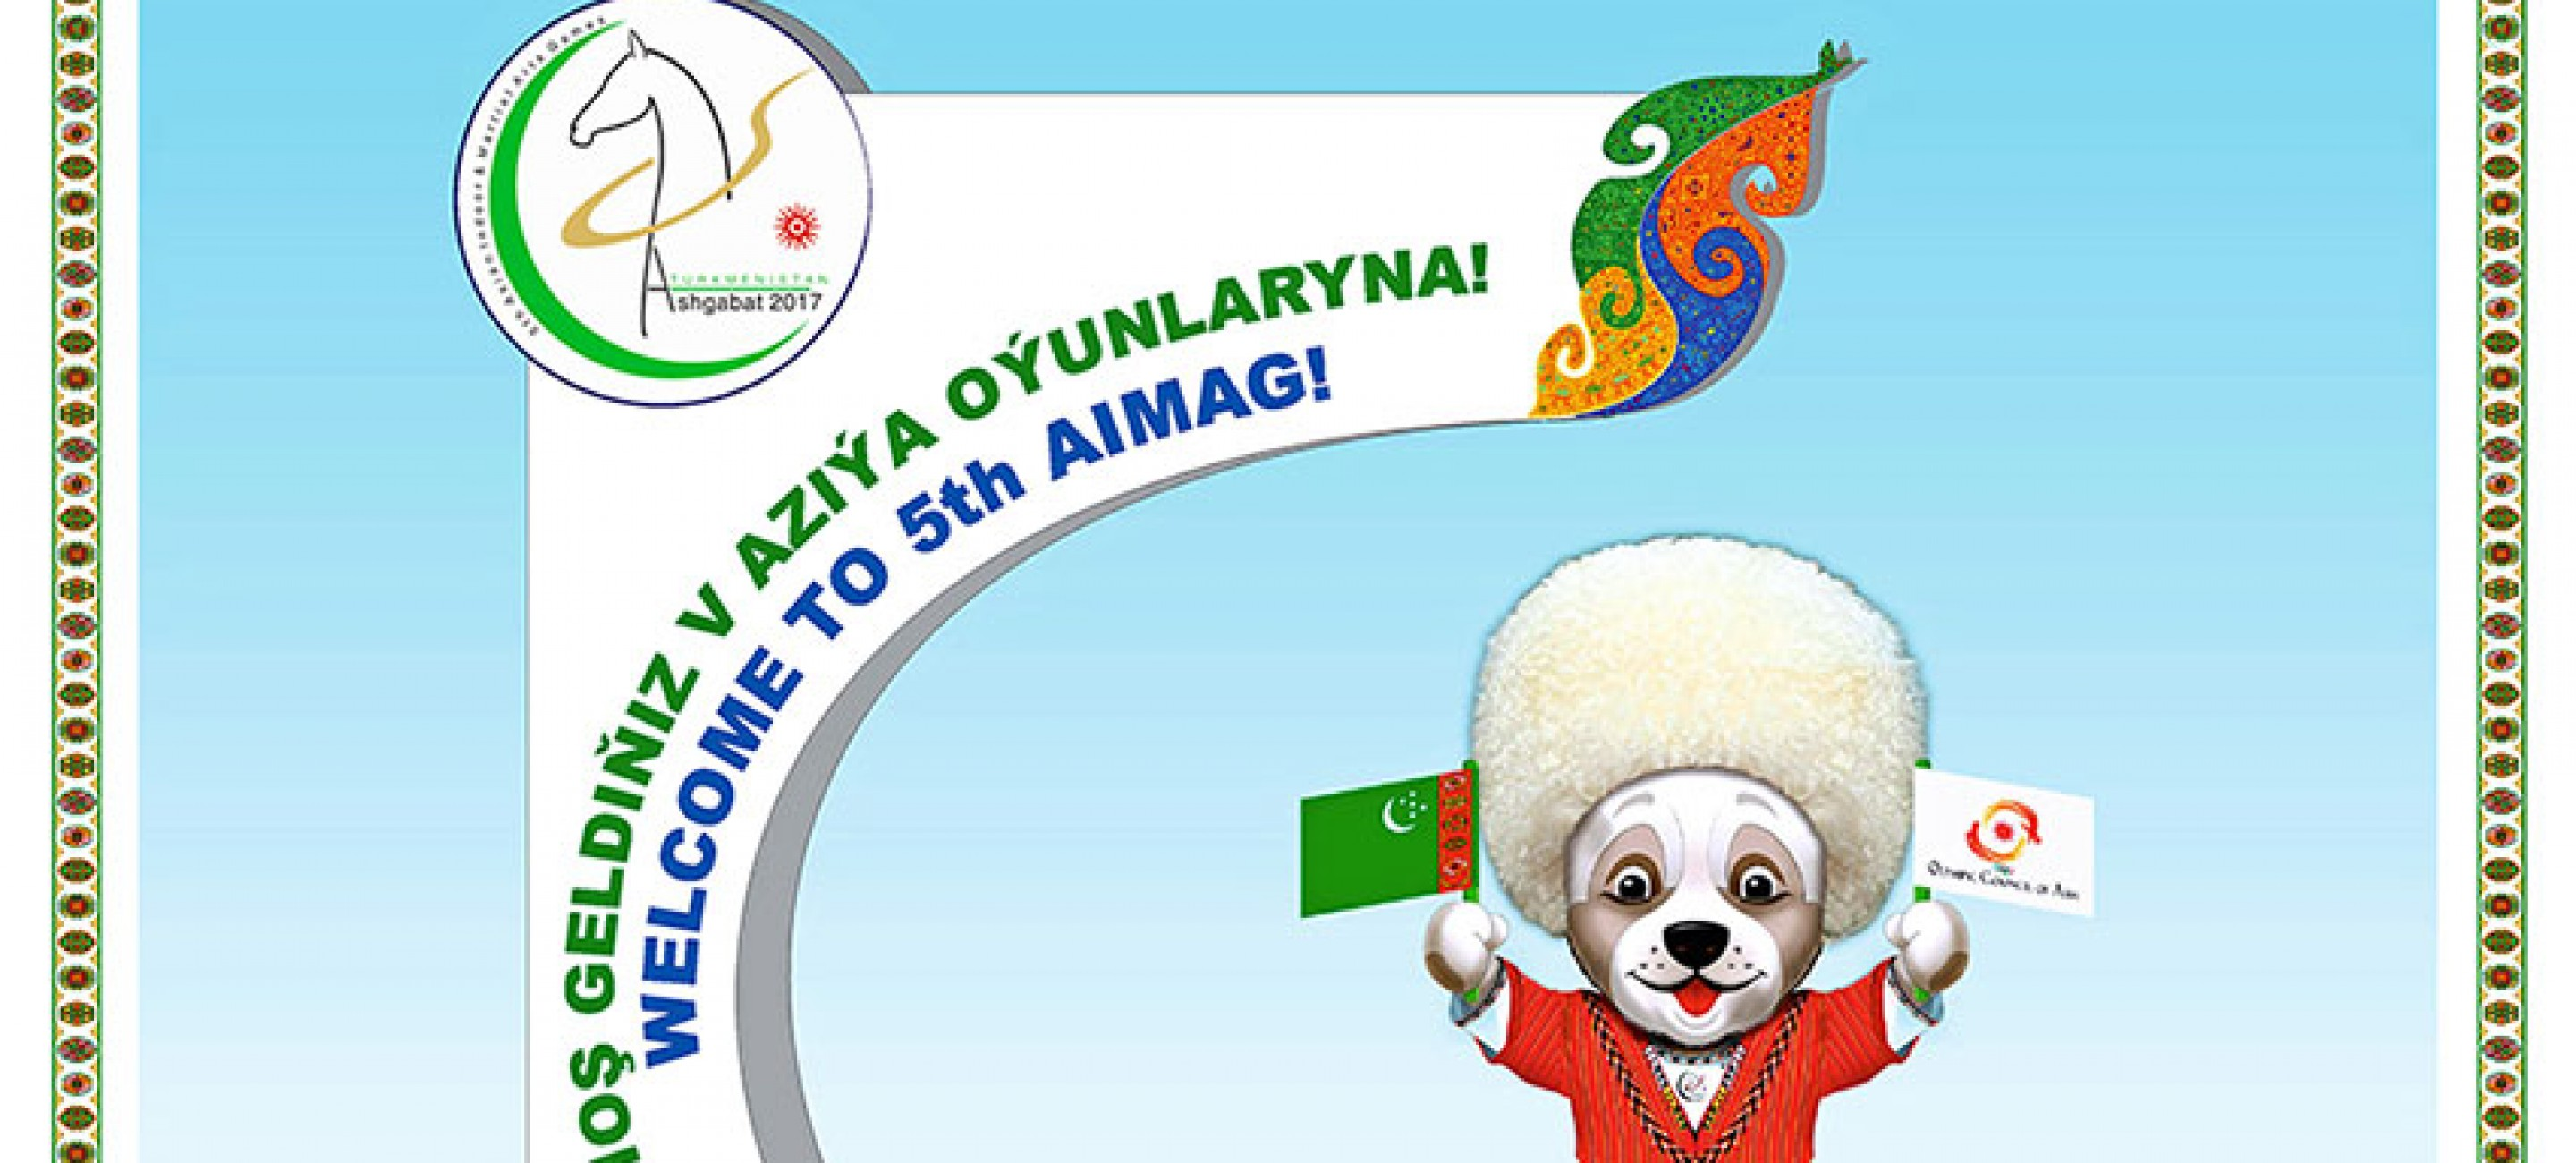 Efforts of Turkmenistan to promote sports and healthy lifestyle